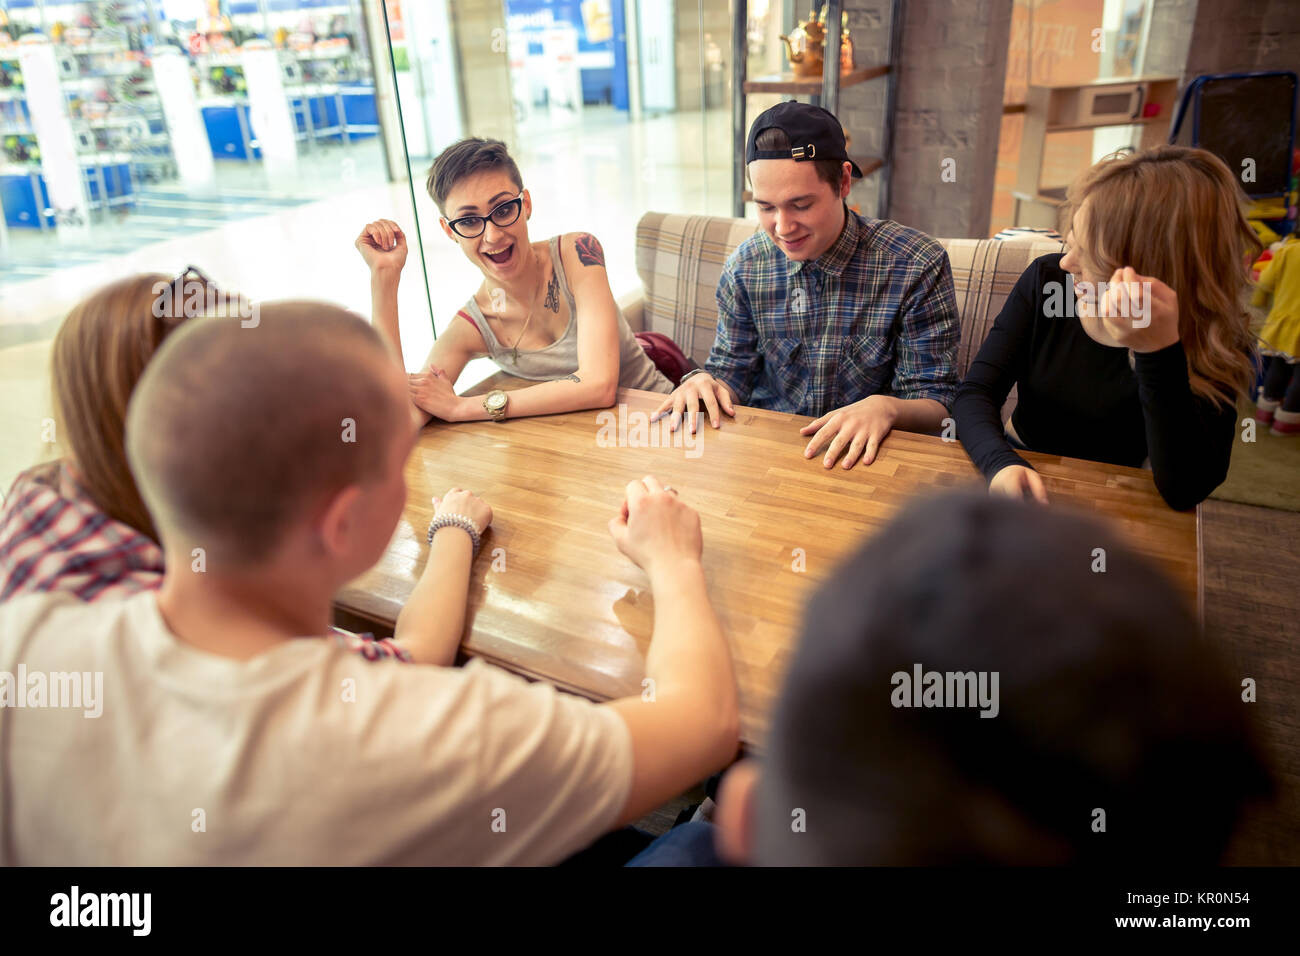 Group of students sitting in a cafe bar looking at each other - Stock Image